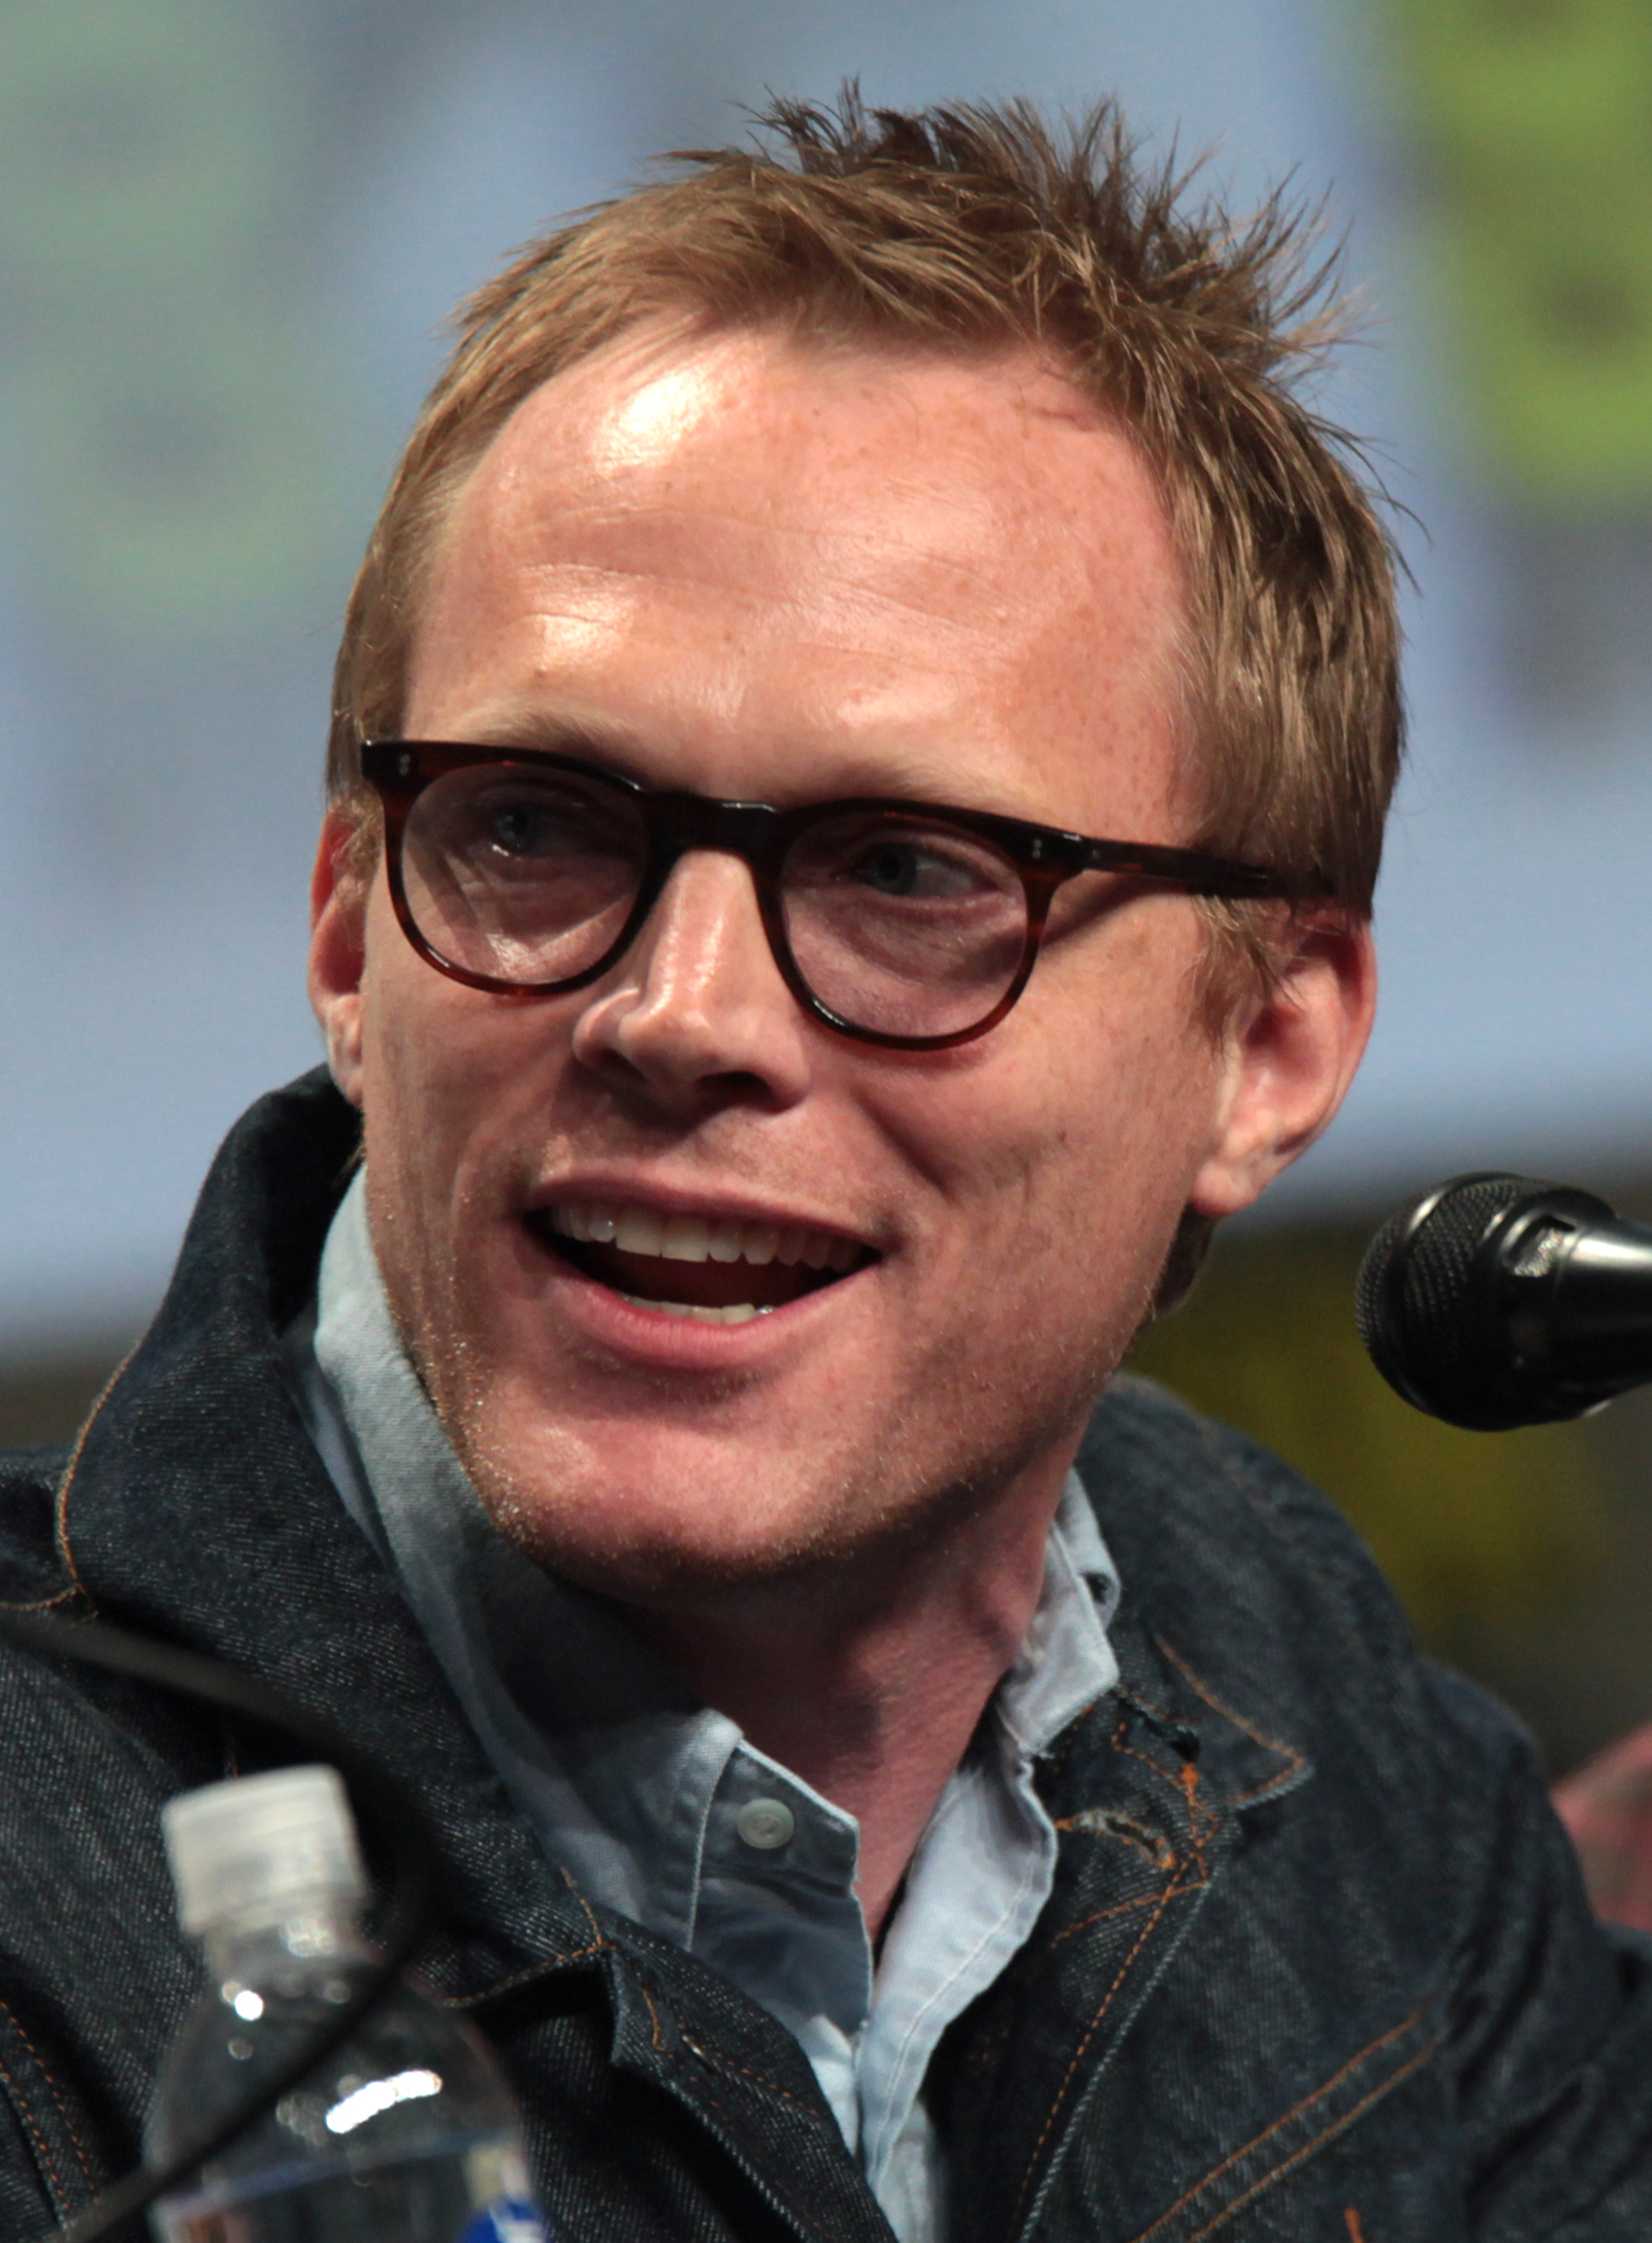 Forum on this topic: Natalie Mendoza, paul-bettany-born-1971/